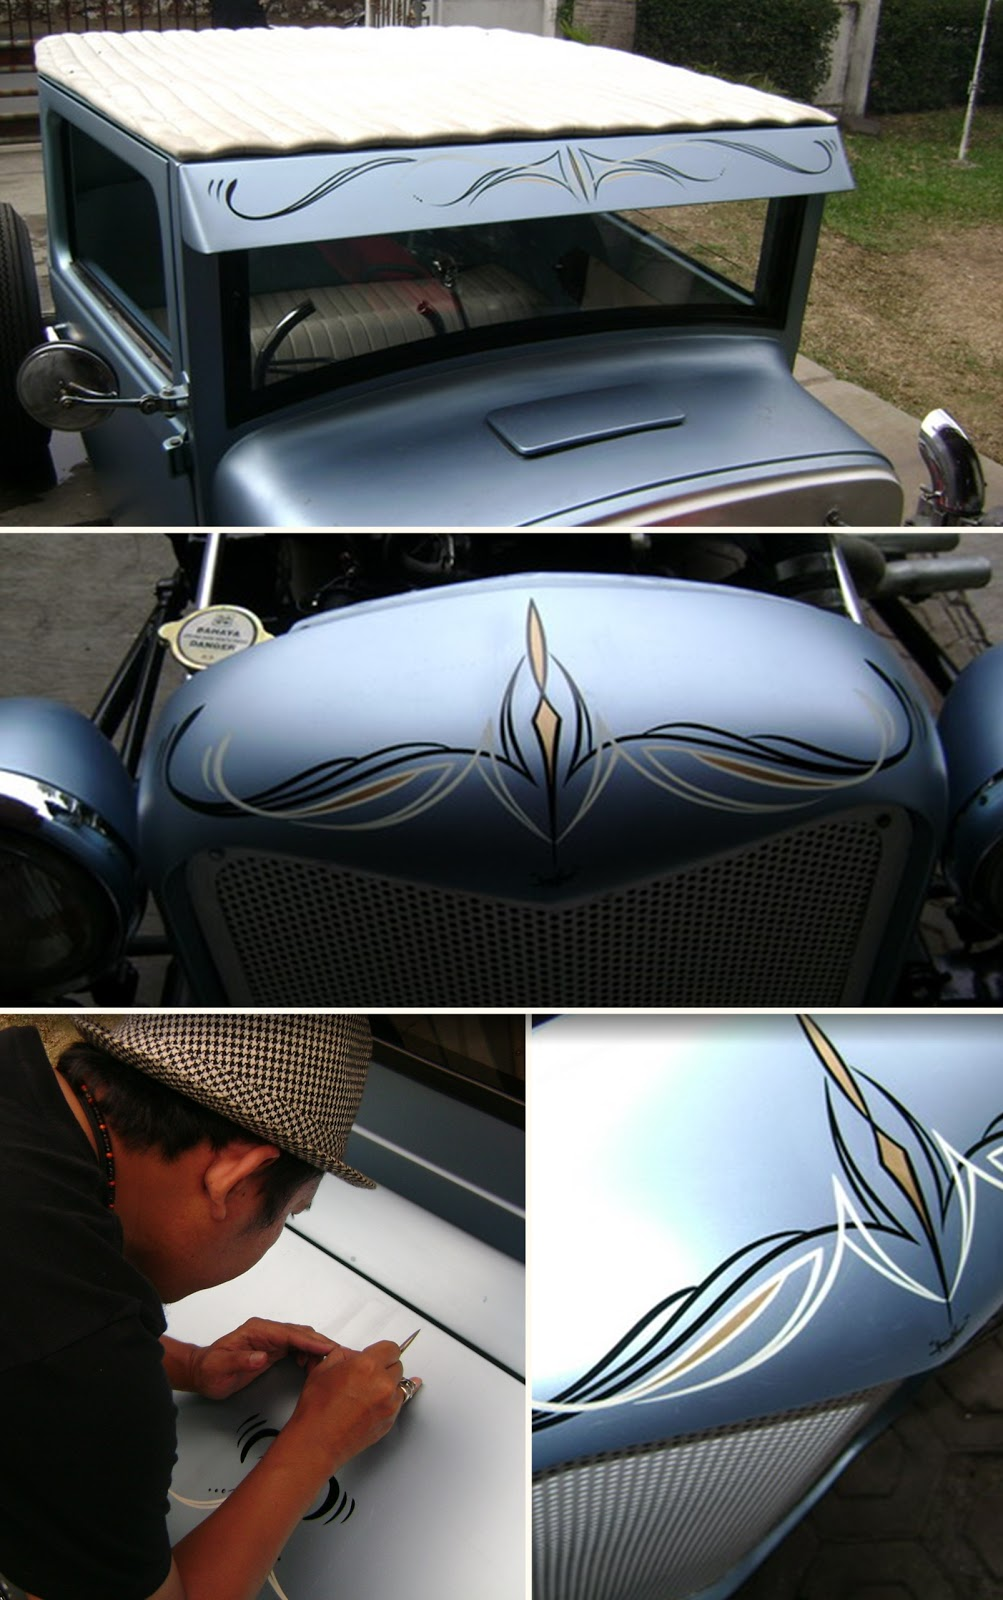 pinstripe karya freeflow pada mobil (http://freeflowkustompainting.blogspot.co.id)